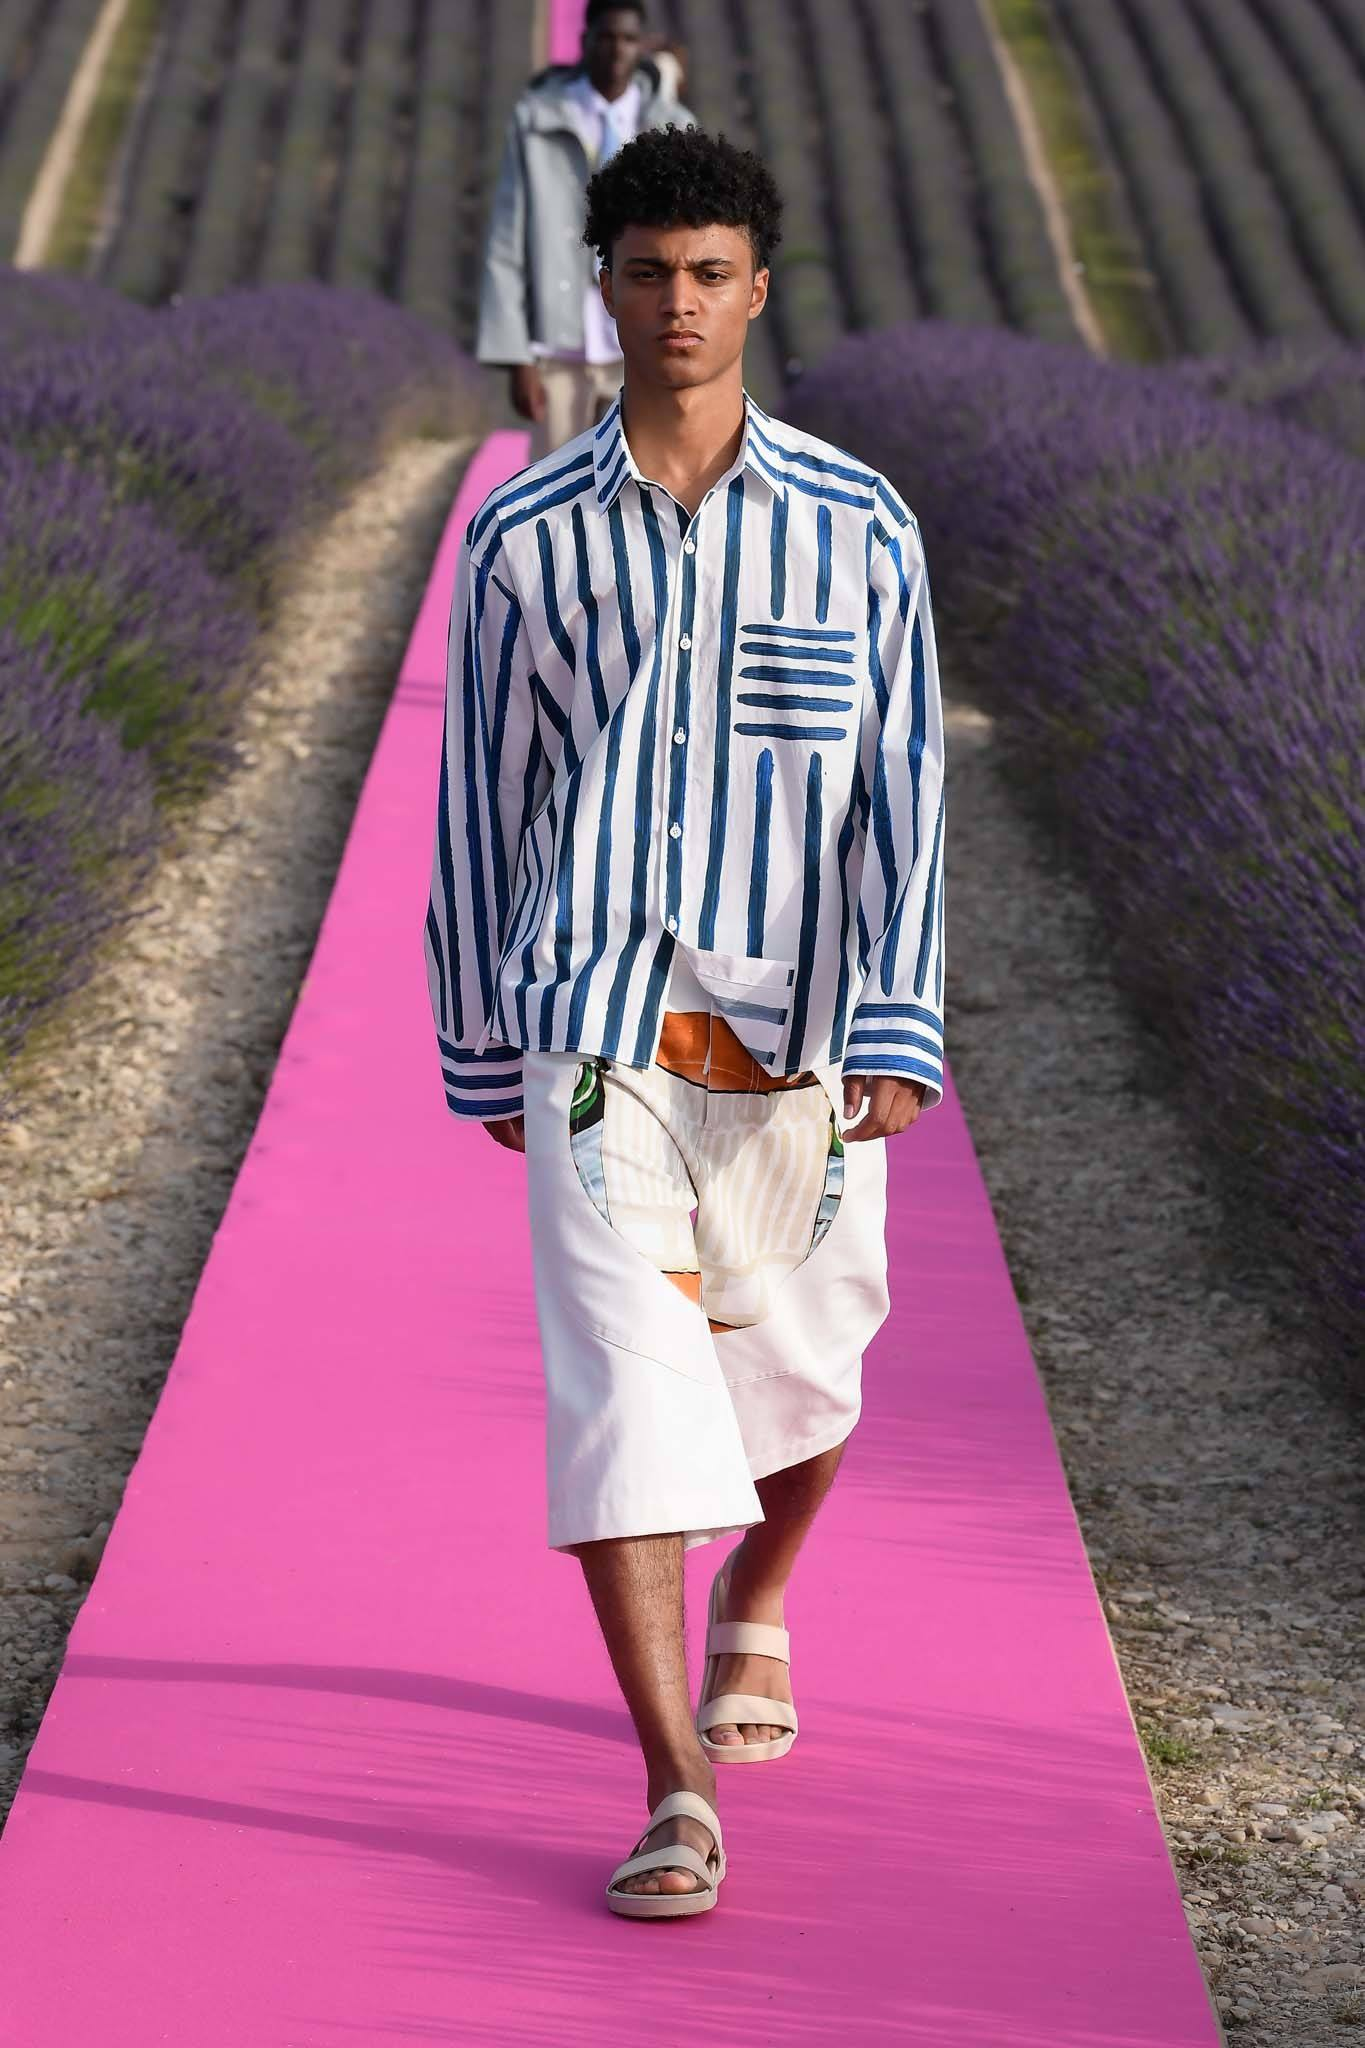 Male model with afro high top